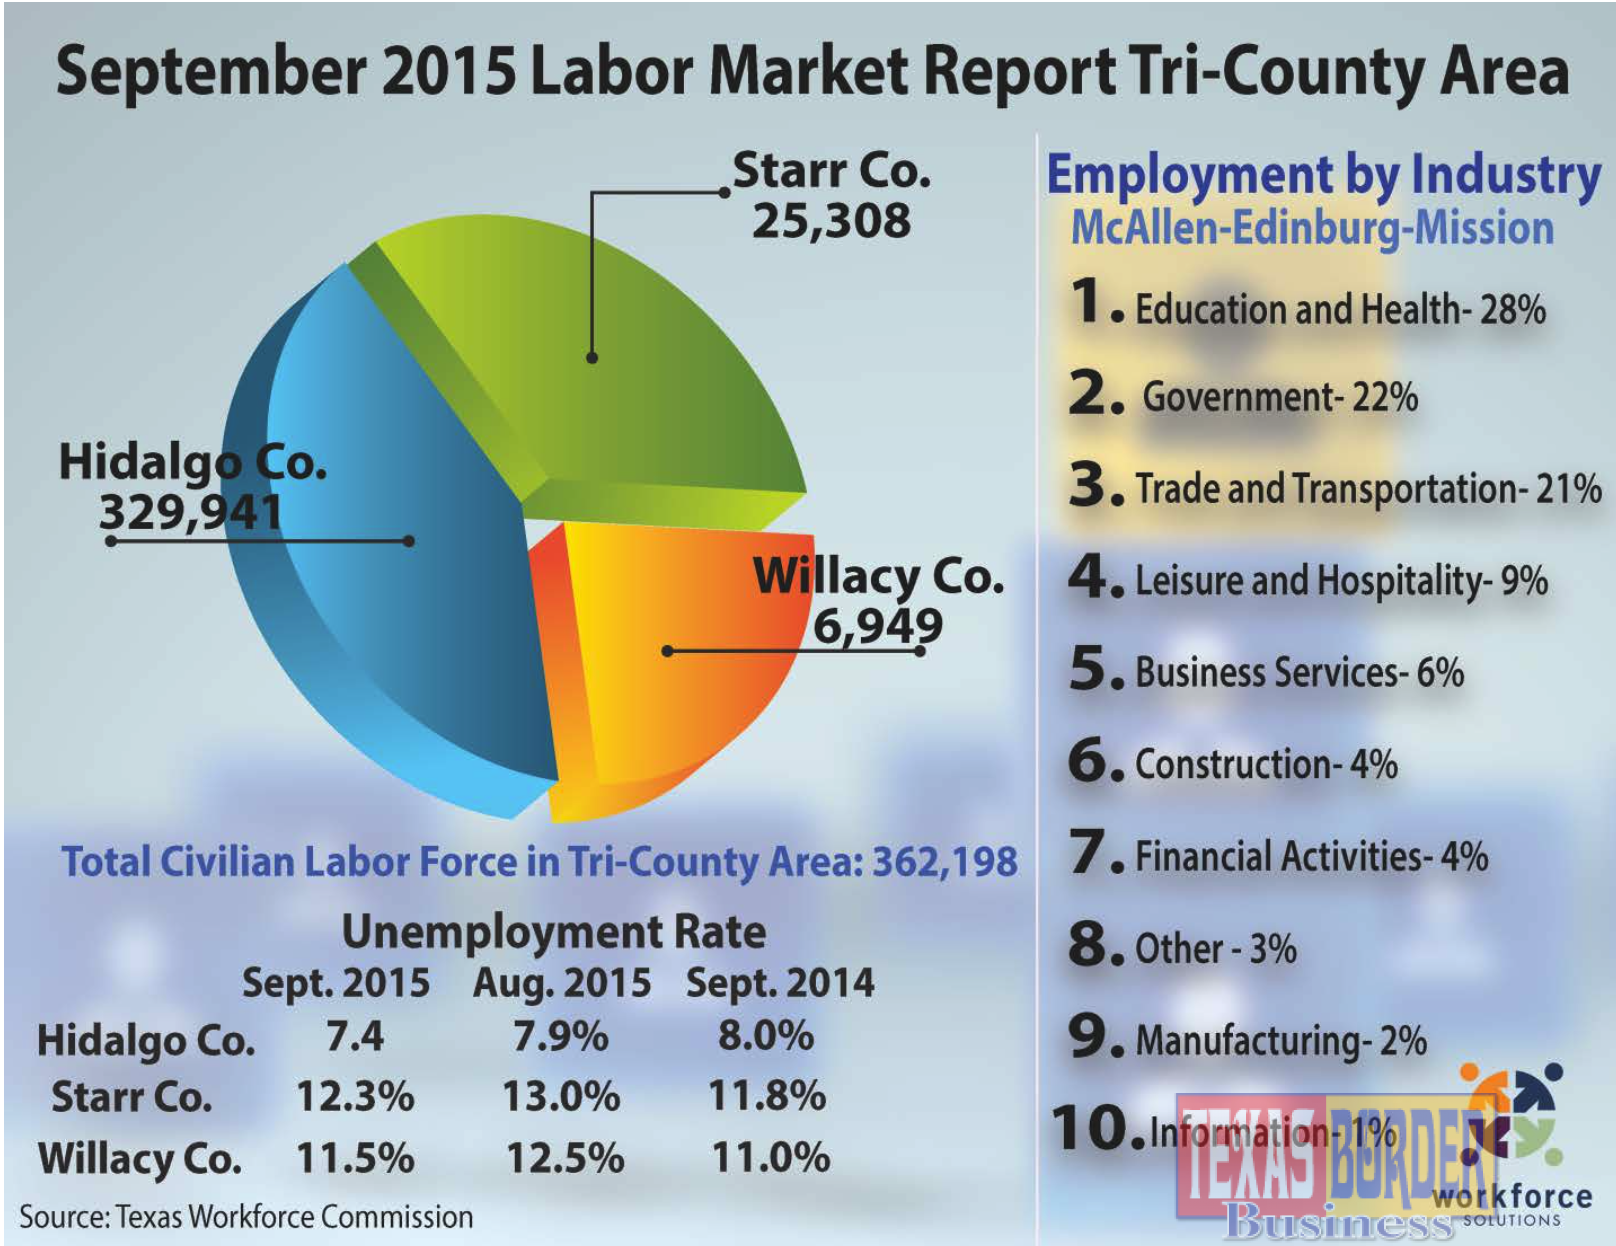 McAllenMIssionEdinburg Metro Area Reports That Unemployment Rate - Us counties with lowest unemployment rate